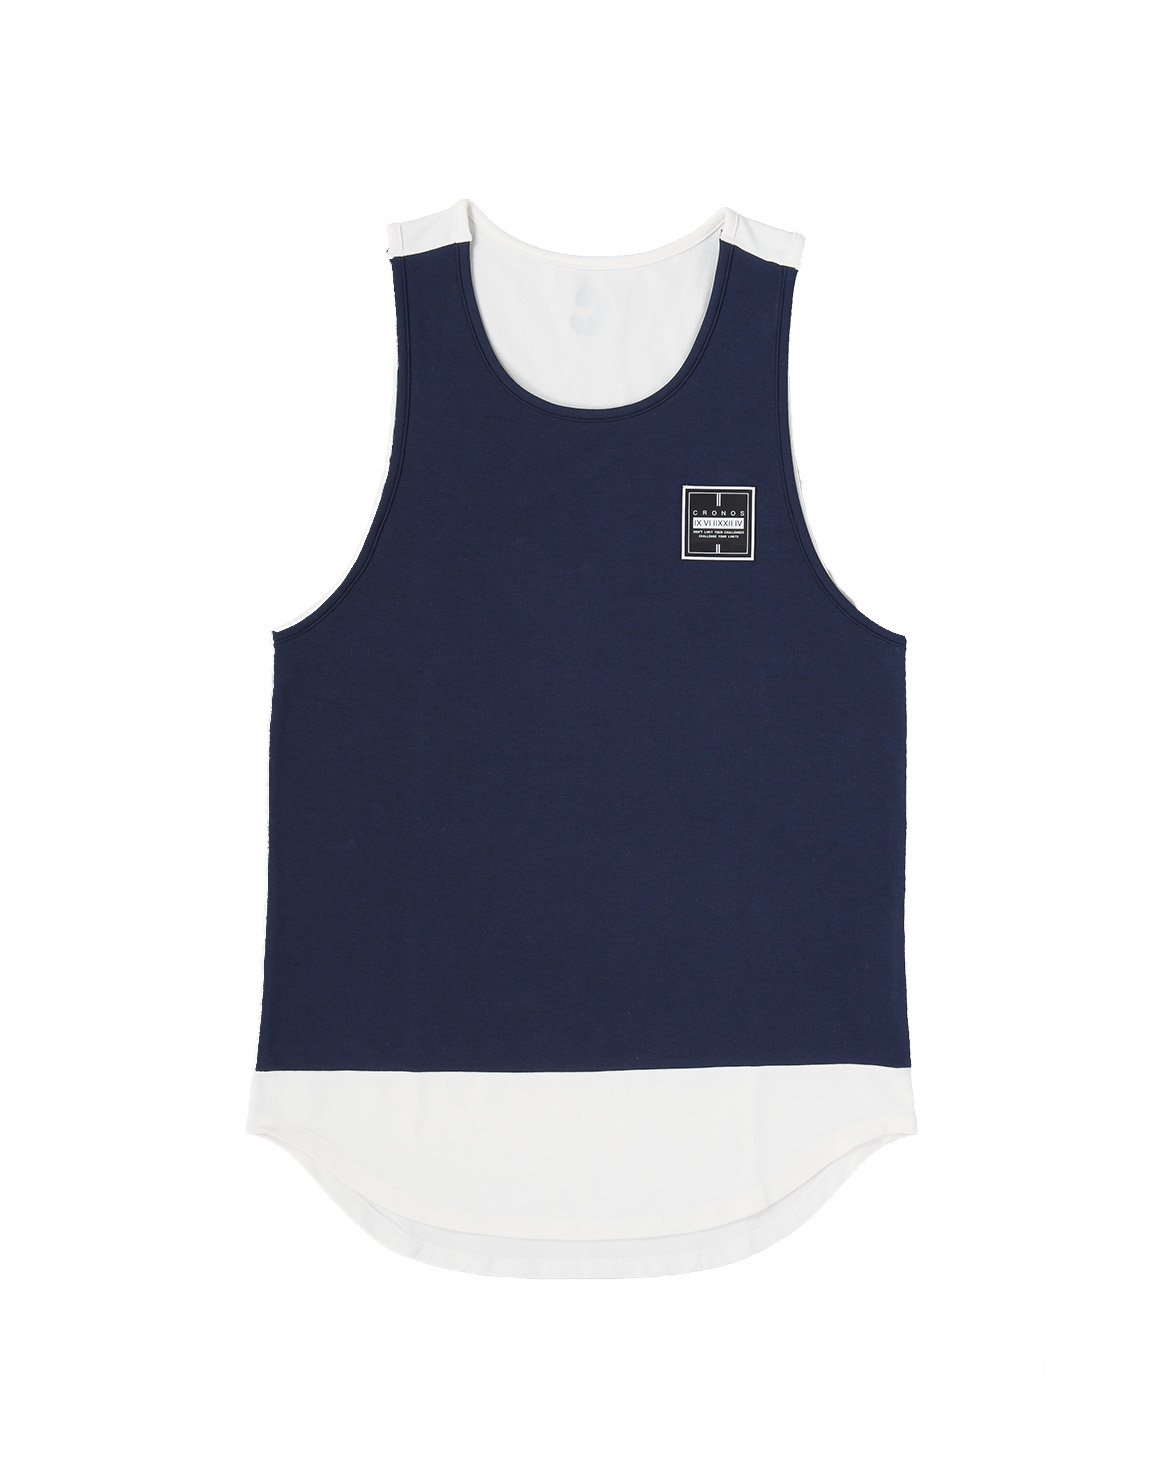 <img class='new_mark_img1' src='https://img.shop-pro.jp/img/new/icons1.gif' style='border:none;display:inline;margin:0px;padding:0px;width:auto;' />CRONOS BI-COLOR TANK TOP 【NAVY】